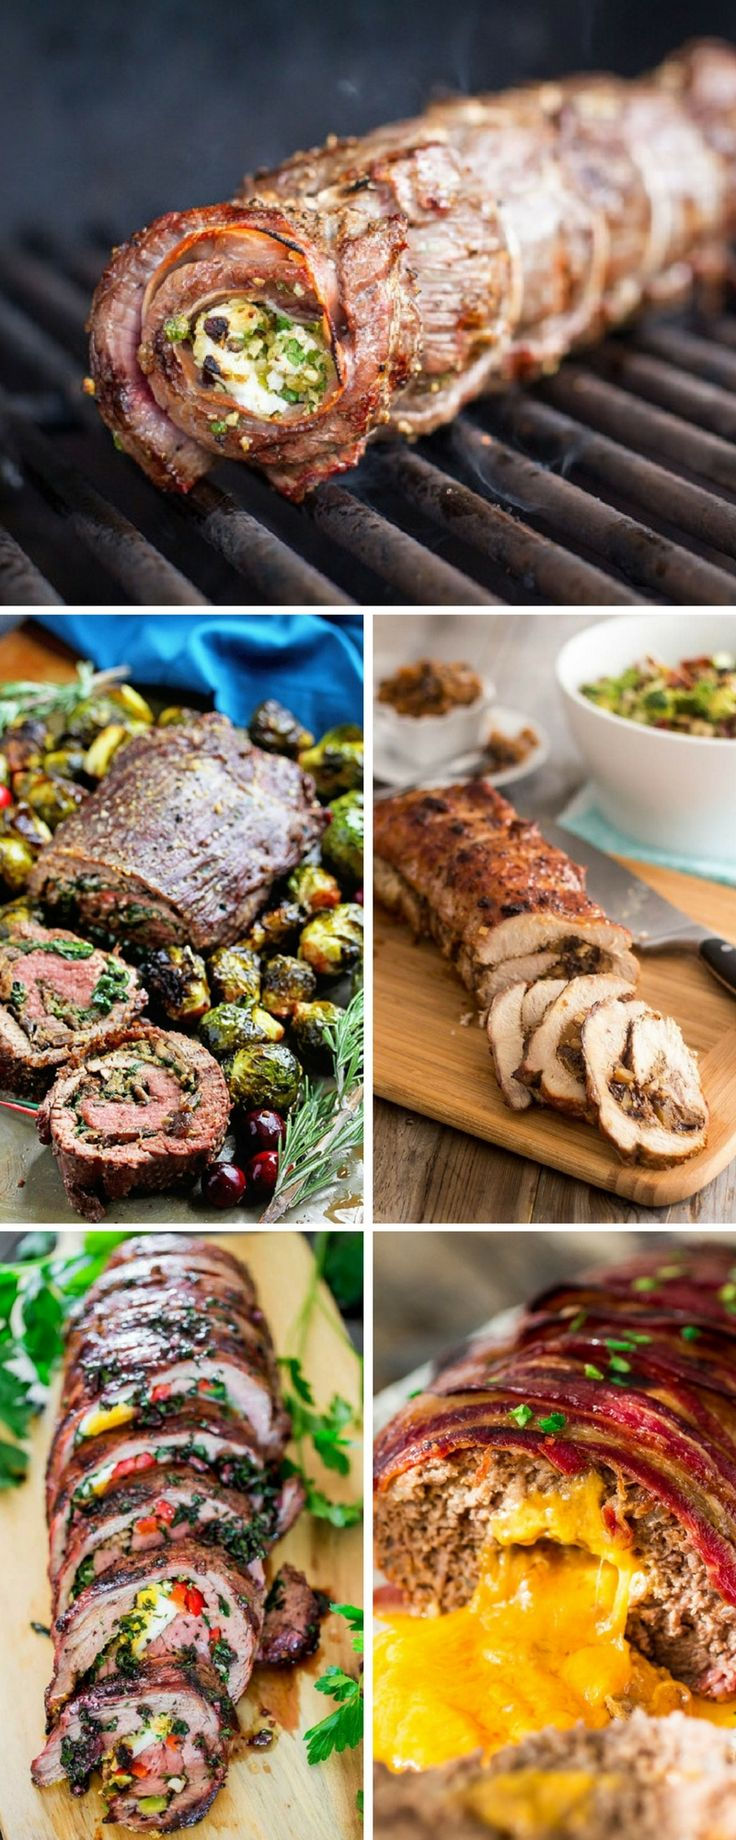 Holidays call for the most decadent dishes of the year. And some of the most sensational dishes to grace your table are the stuffed meat rolls. Just think about a stuffed flank steak roasted to perfection!